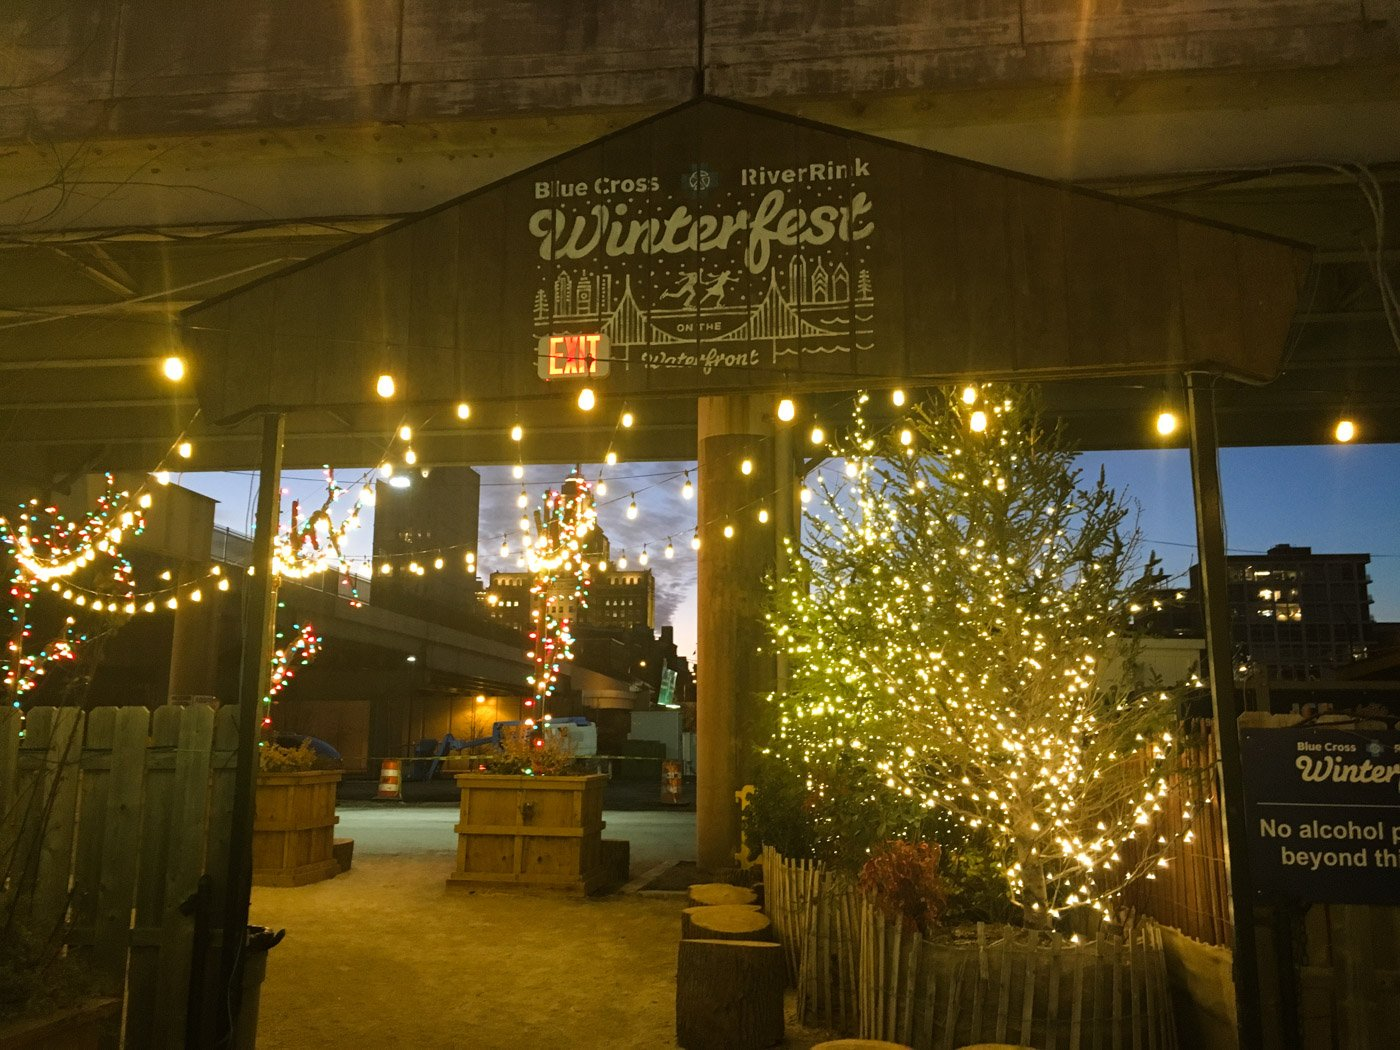 Philadelphia has lots of fun holiday-related activities to experience, and they can all be done on a budget! If you're looking for a place to get into the holiday spirit, try visiting Philadelphia in winter!